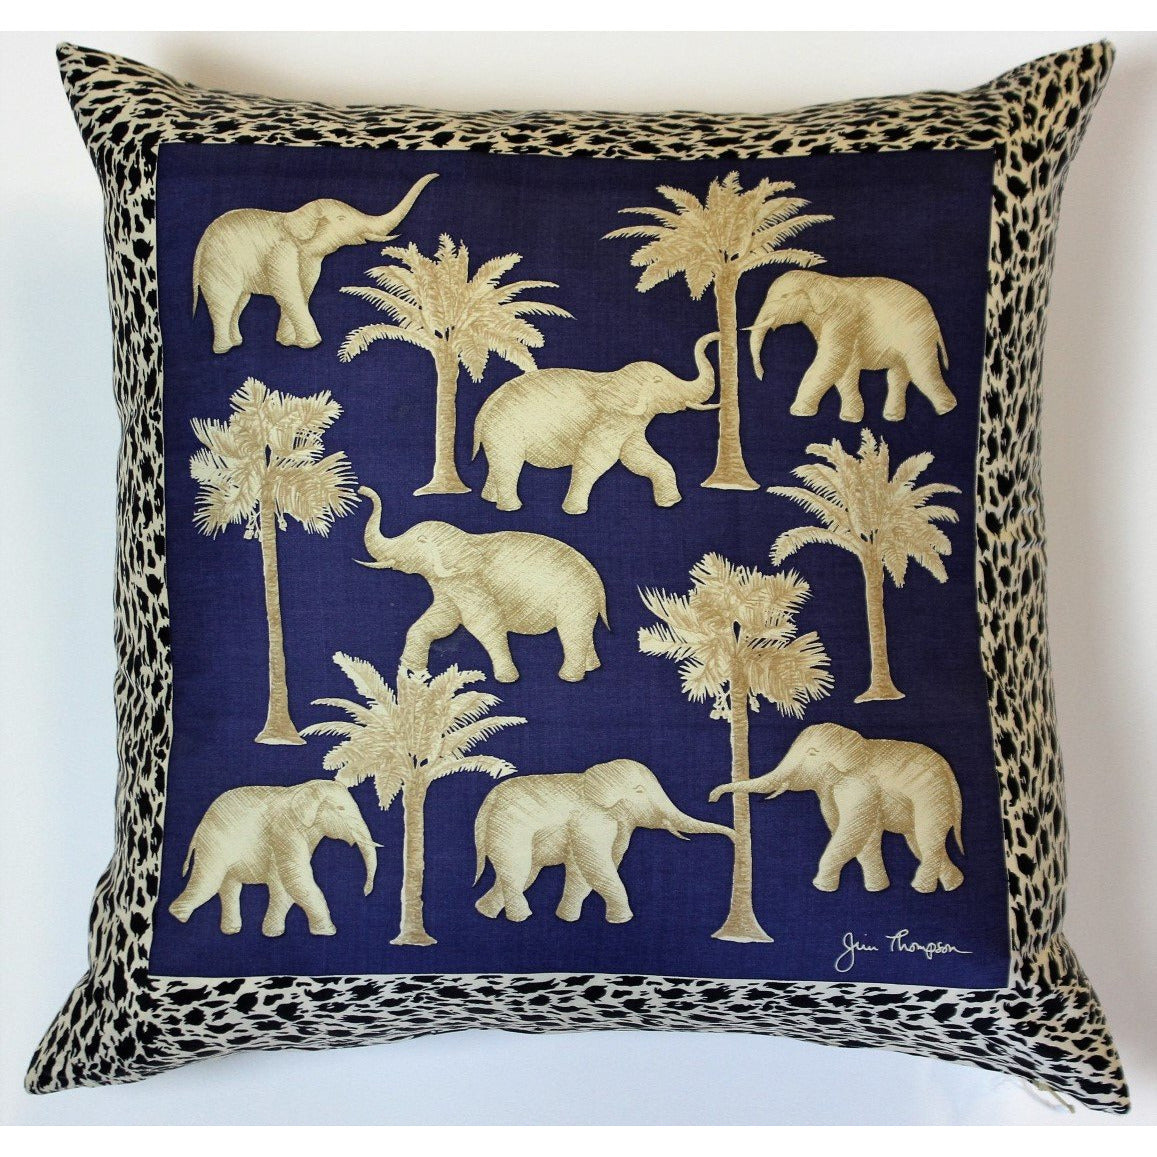 Jim Thompson Thai Elephant Blue Pillow